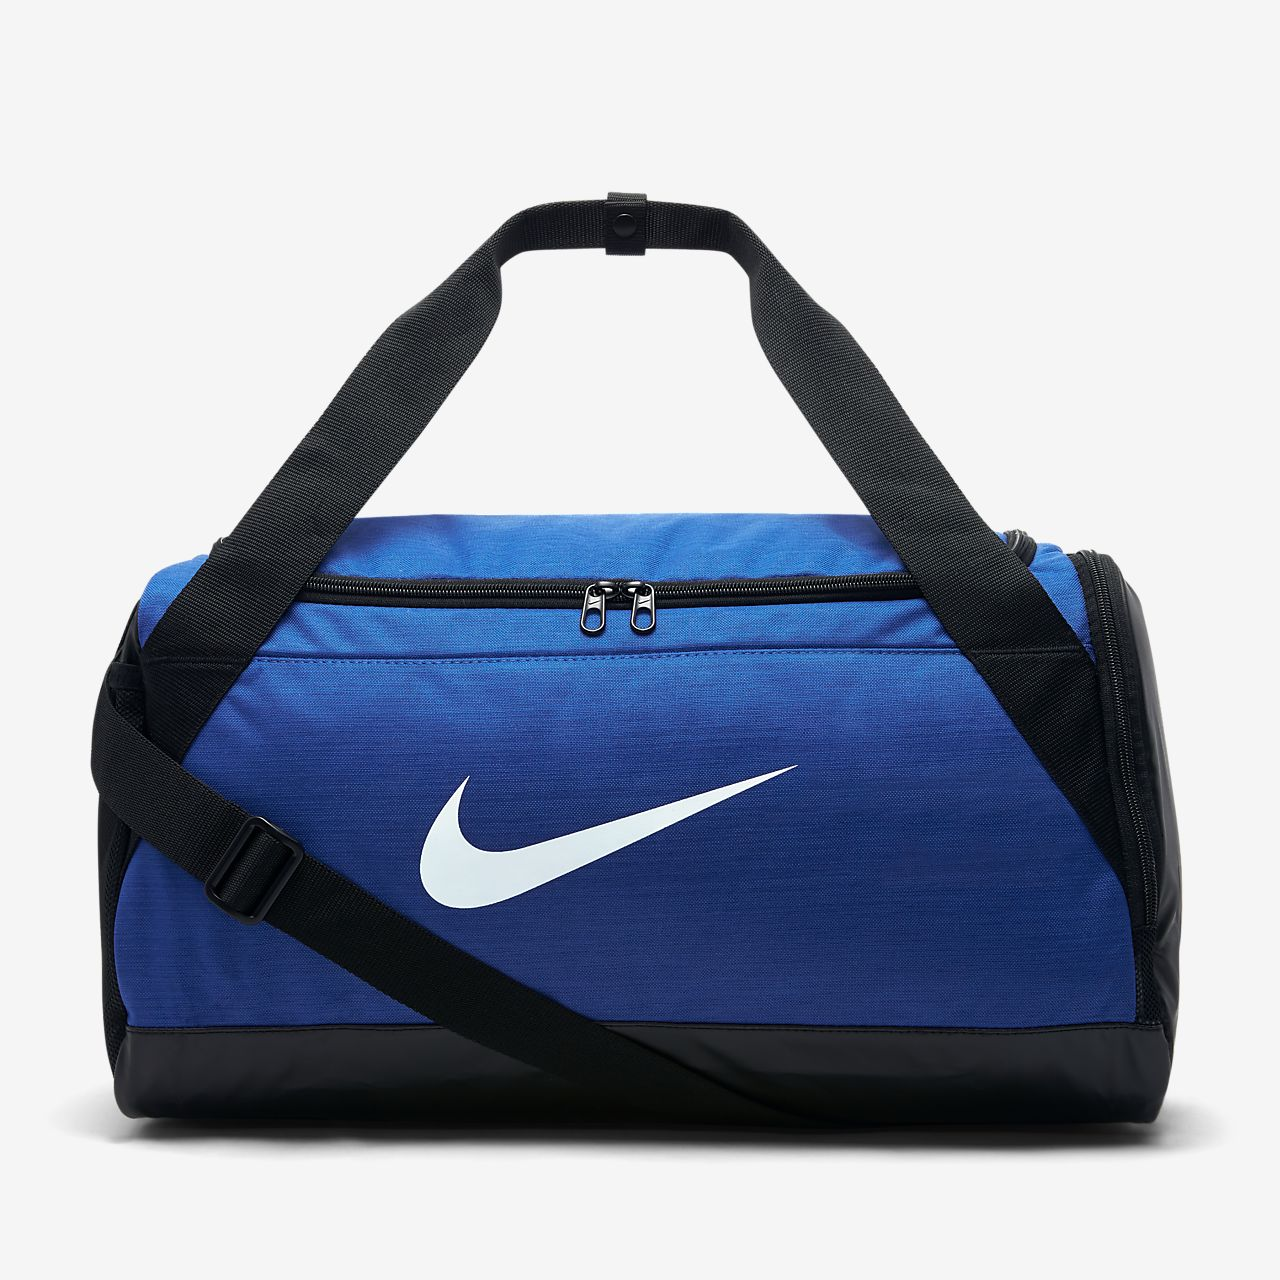 857fb06f9eb9 Nike Brasilia (Small) Training Duffel Bag. Nike.com IE